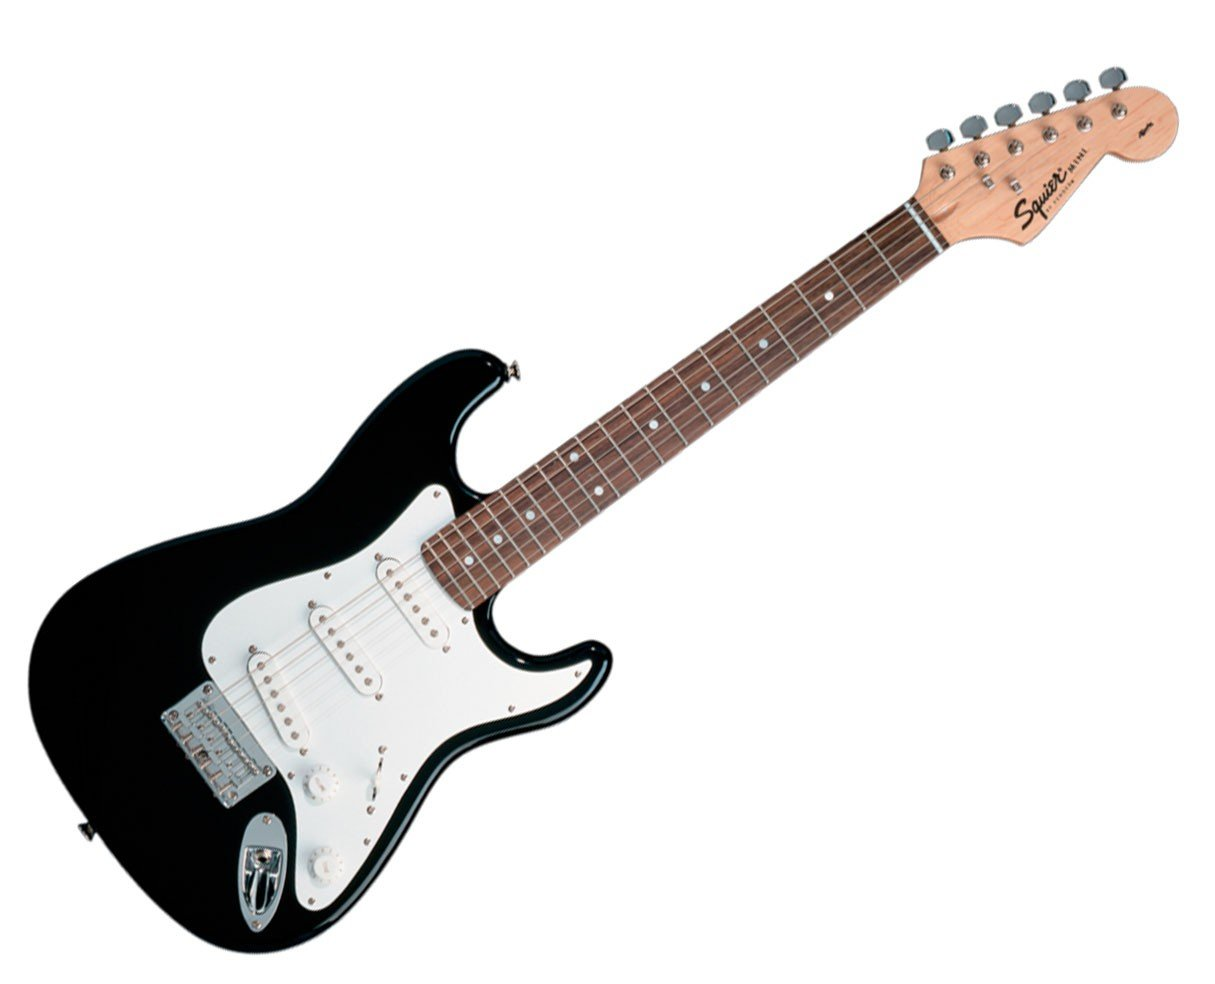 Squier Black Mini Stratocaster Rosewood Fingerboard